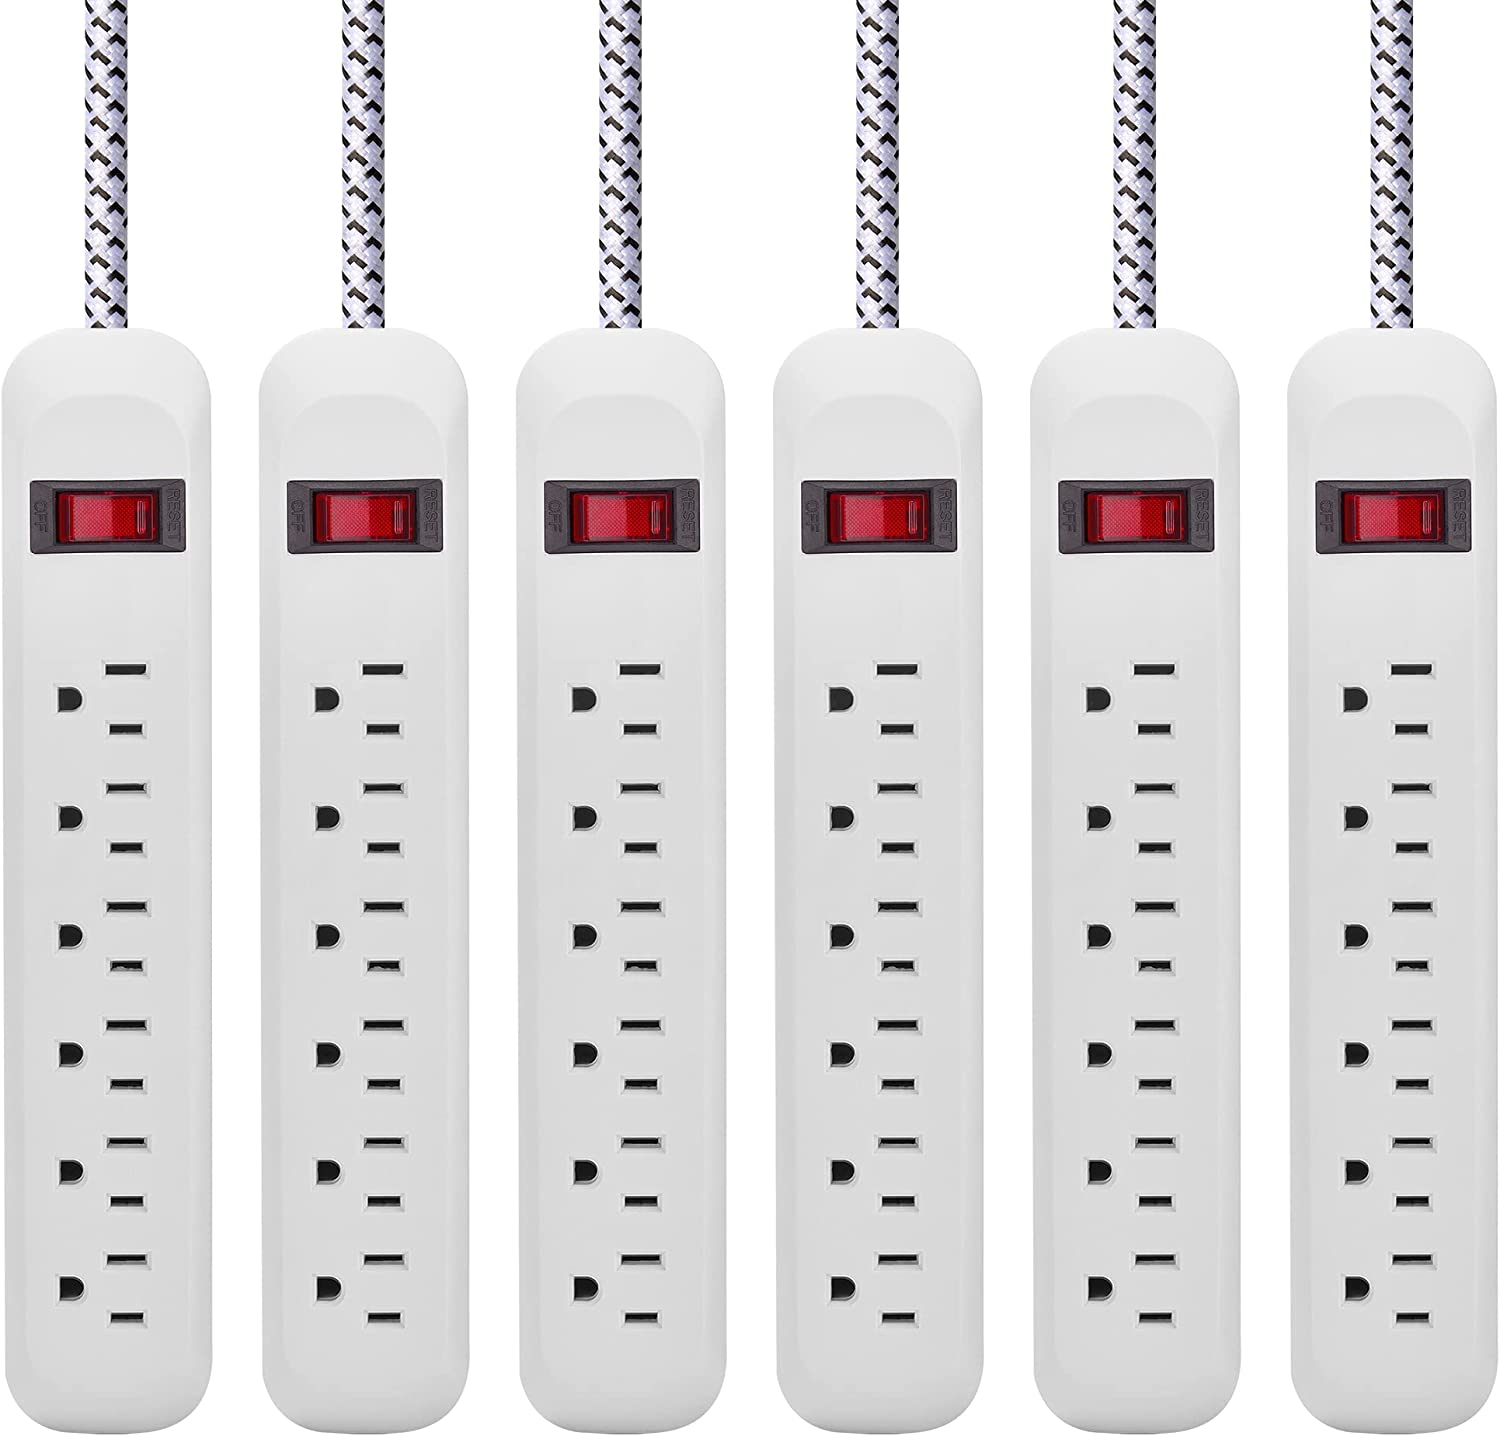 Switched Surge Protector Power shipfree Strip 1865W Plug Outlet 180° Bargain 5